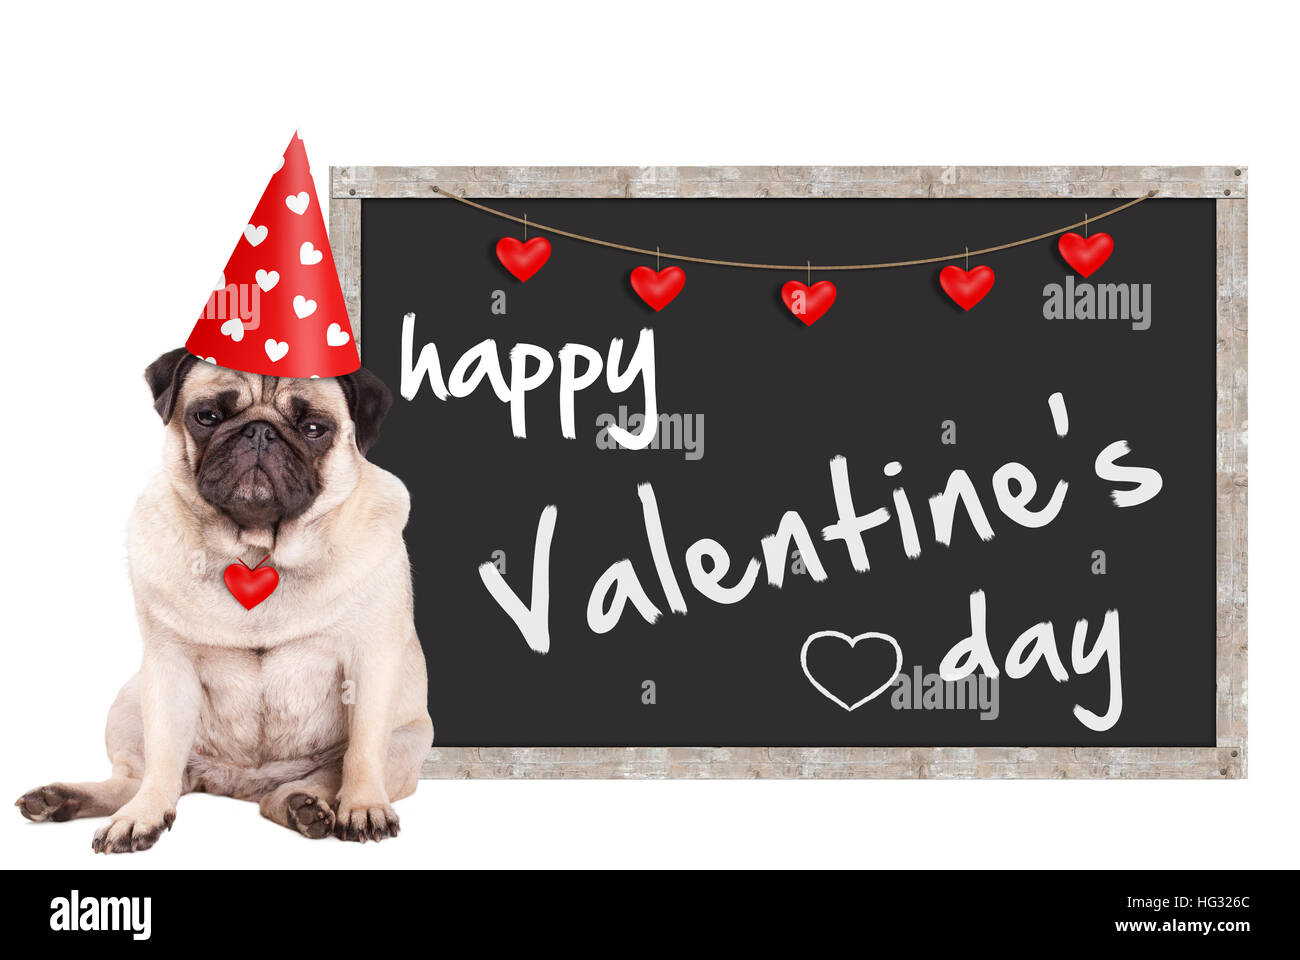 grumpy cute pug puppy dog wearing party hat with hearts, sitting next to blackboard sign with text happy valentine's - Stock Image